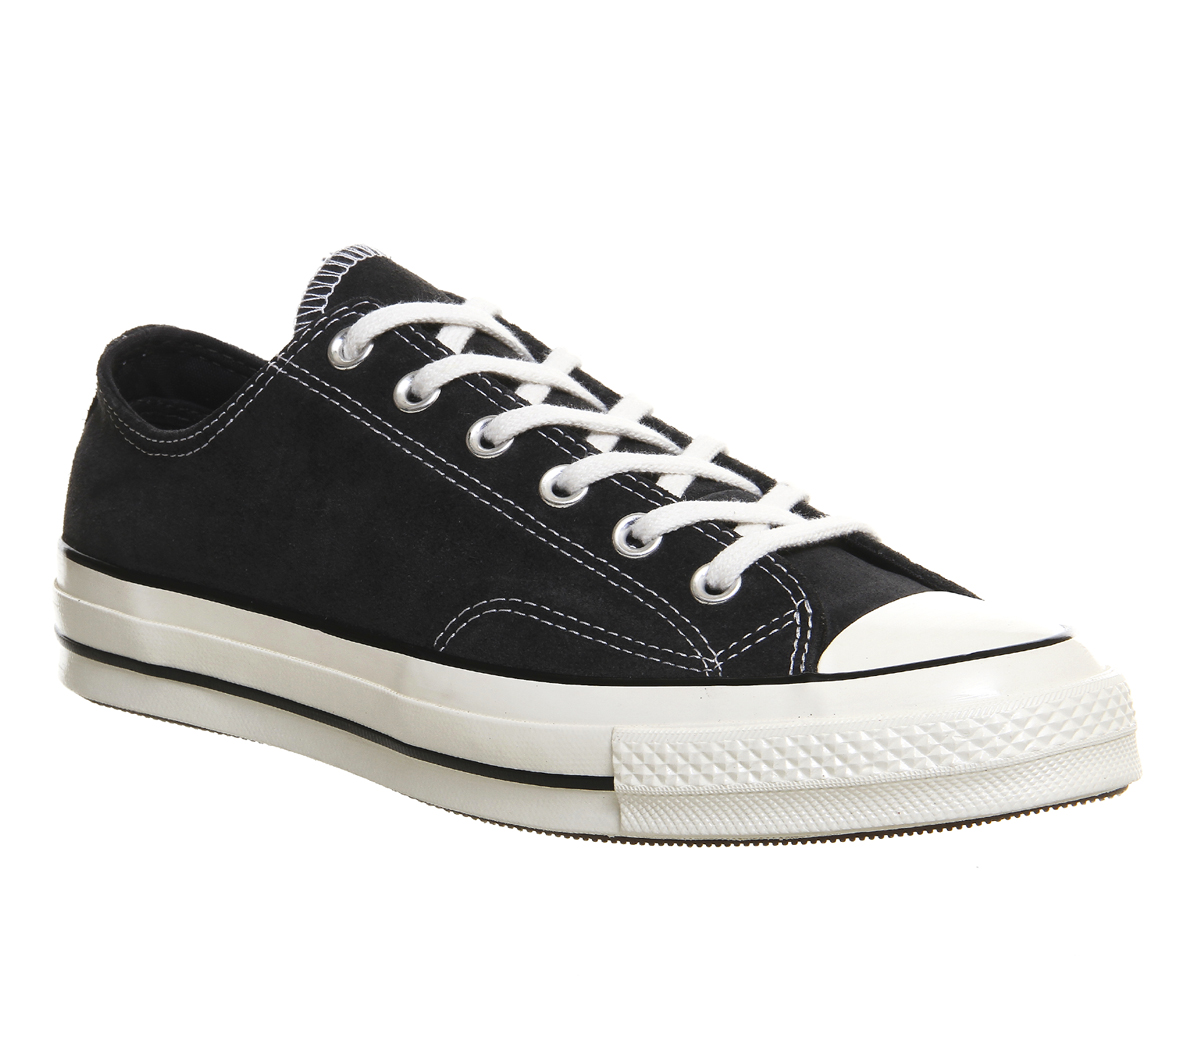 Converse 70s Suede Low Sneakers